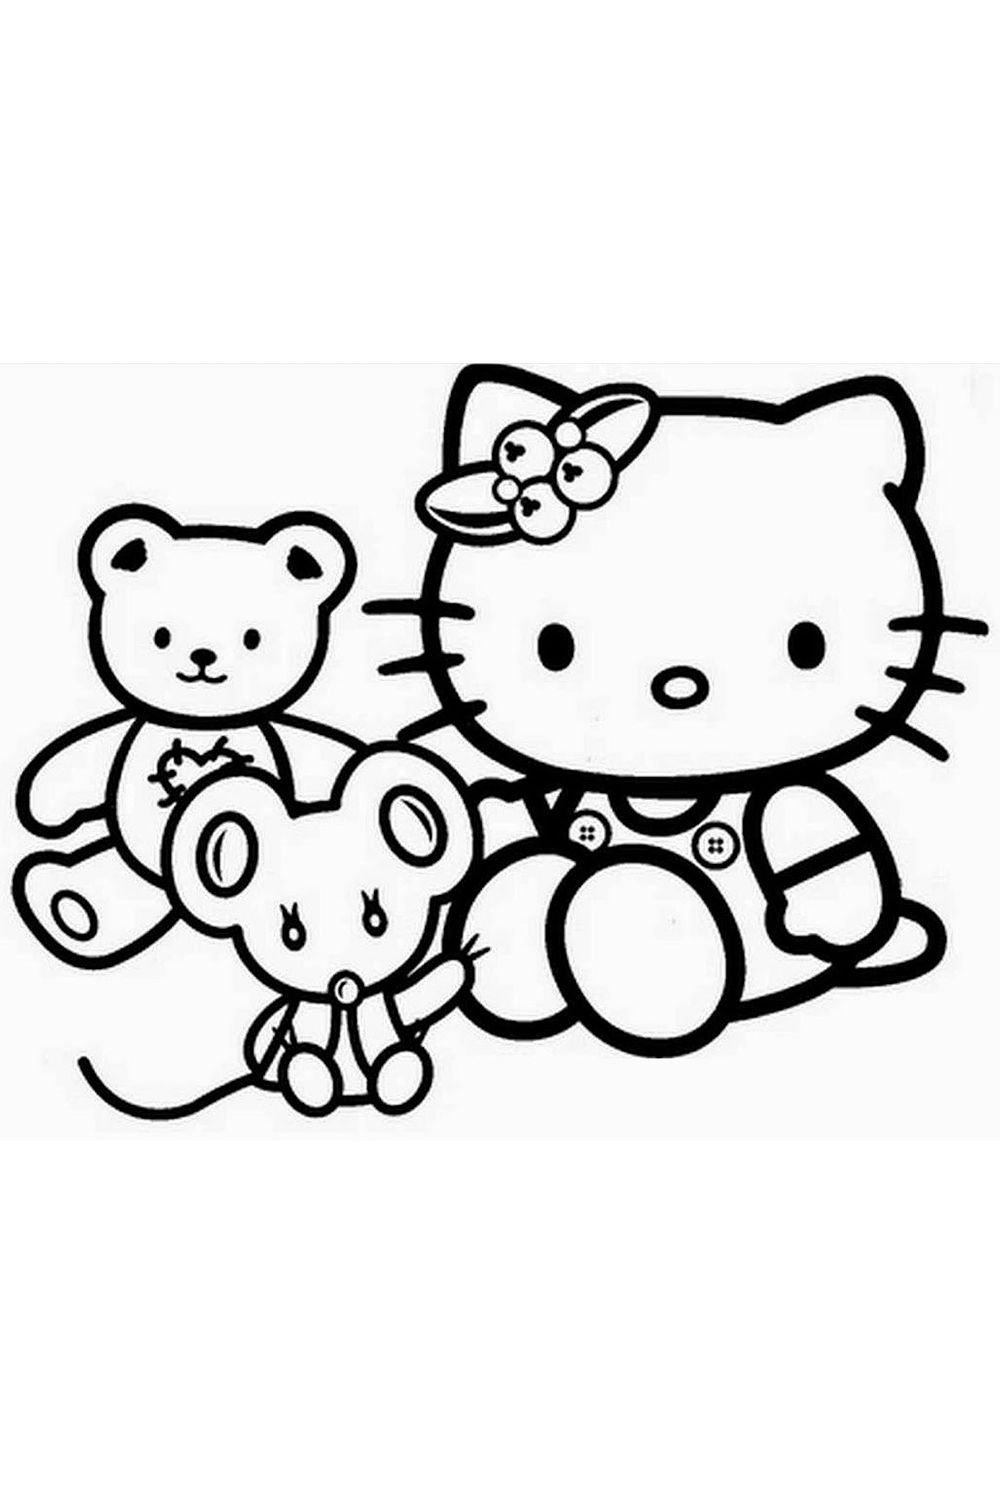 10+ Hello Kitty Coloring Pages For Kids   Hello kitty colouring ...